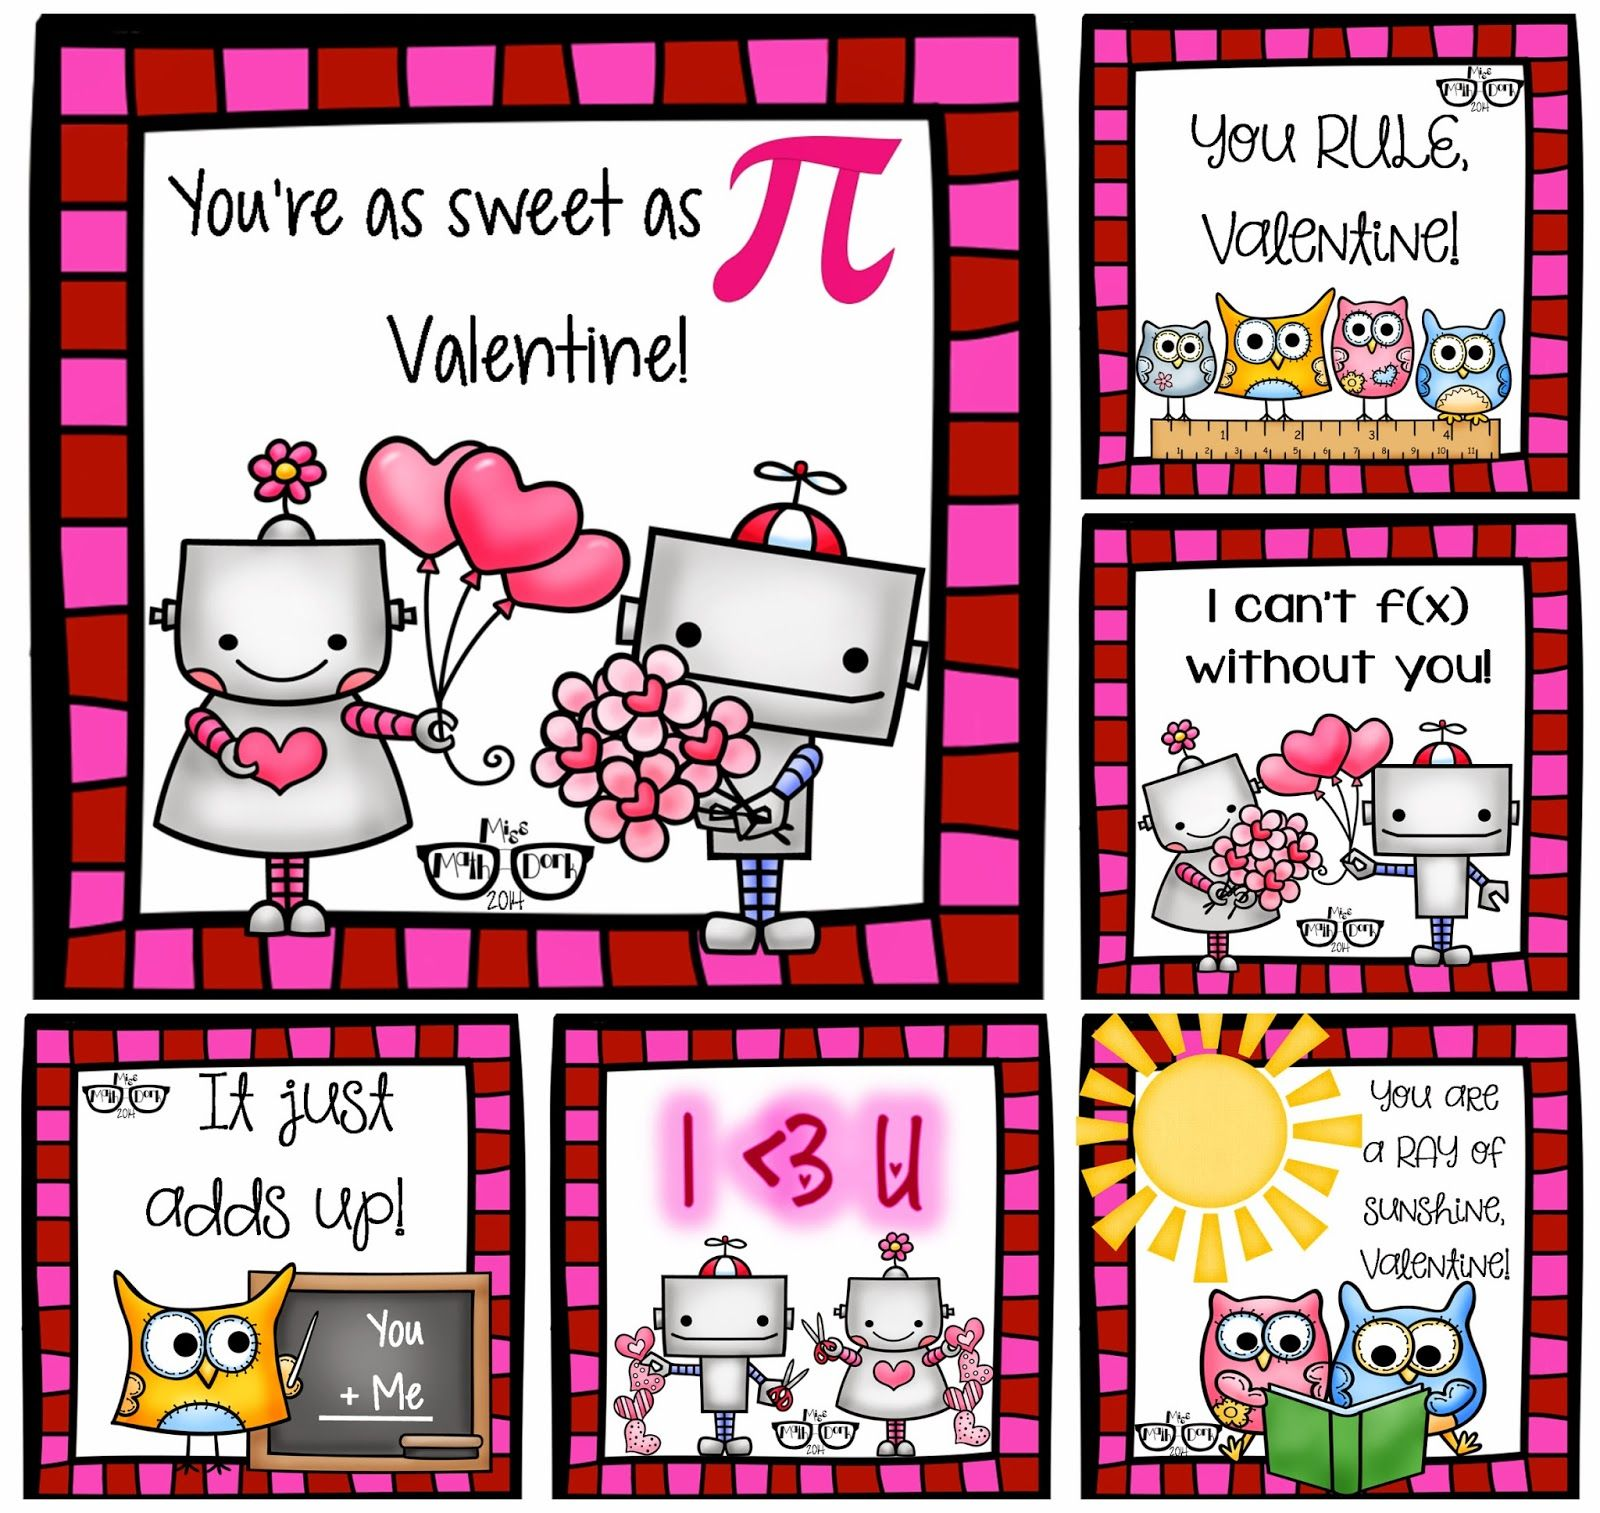 Missmathdork Middle School Math Made Fun Funny Math Valentines